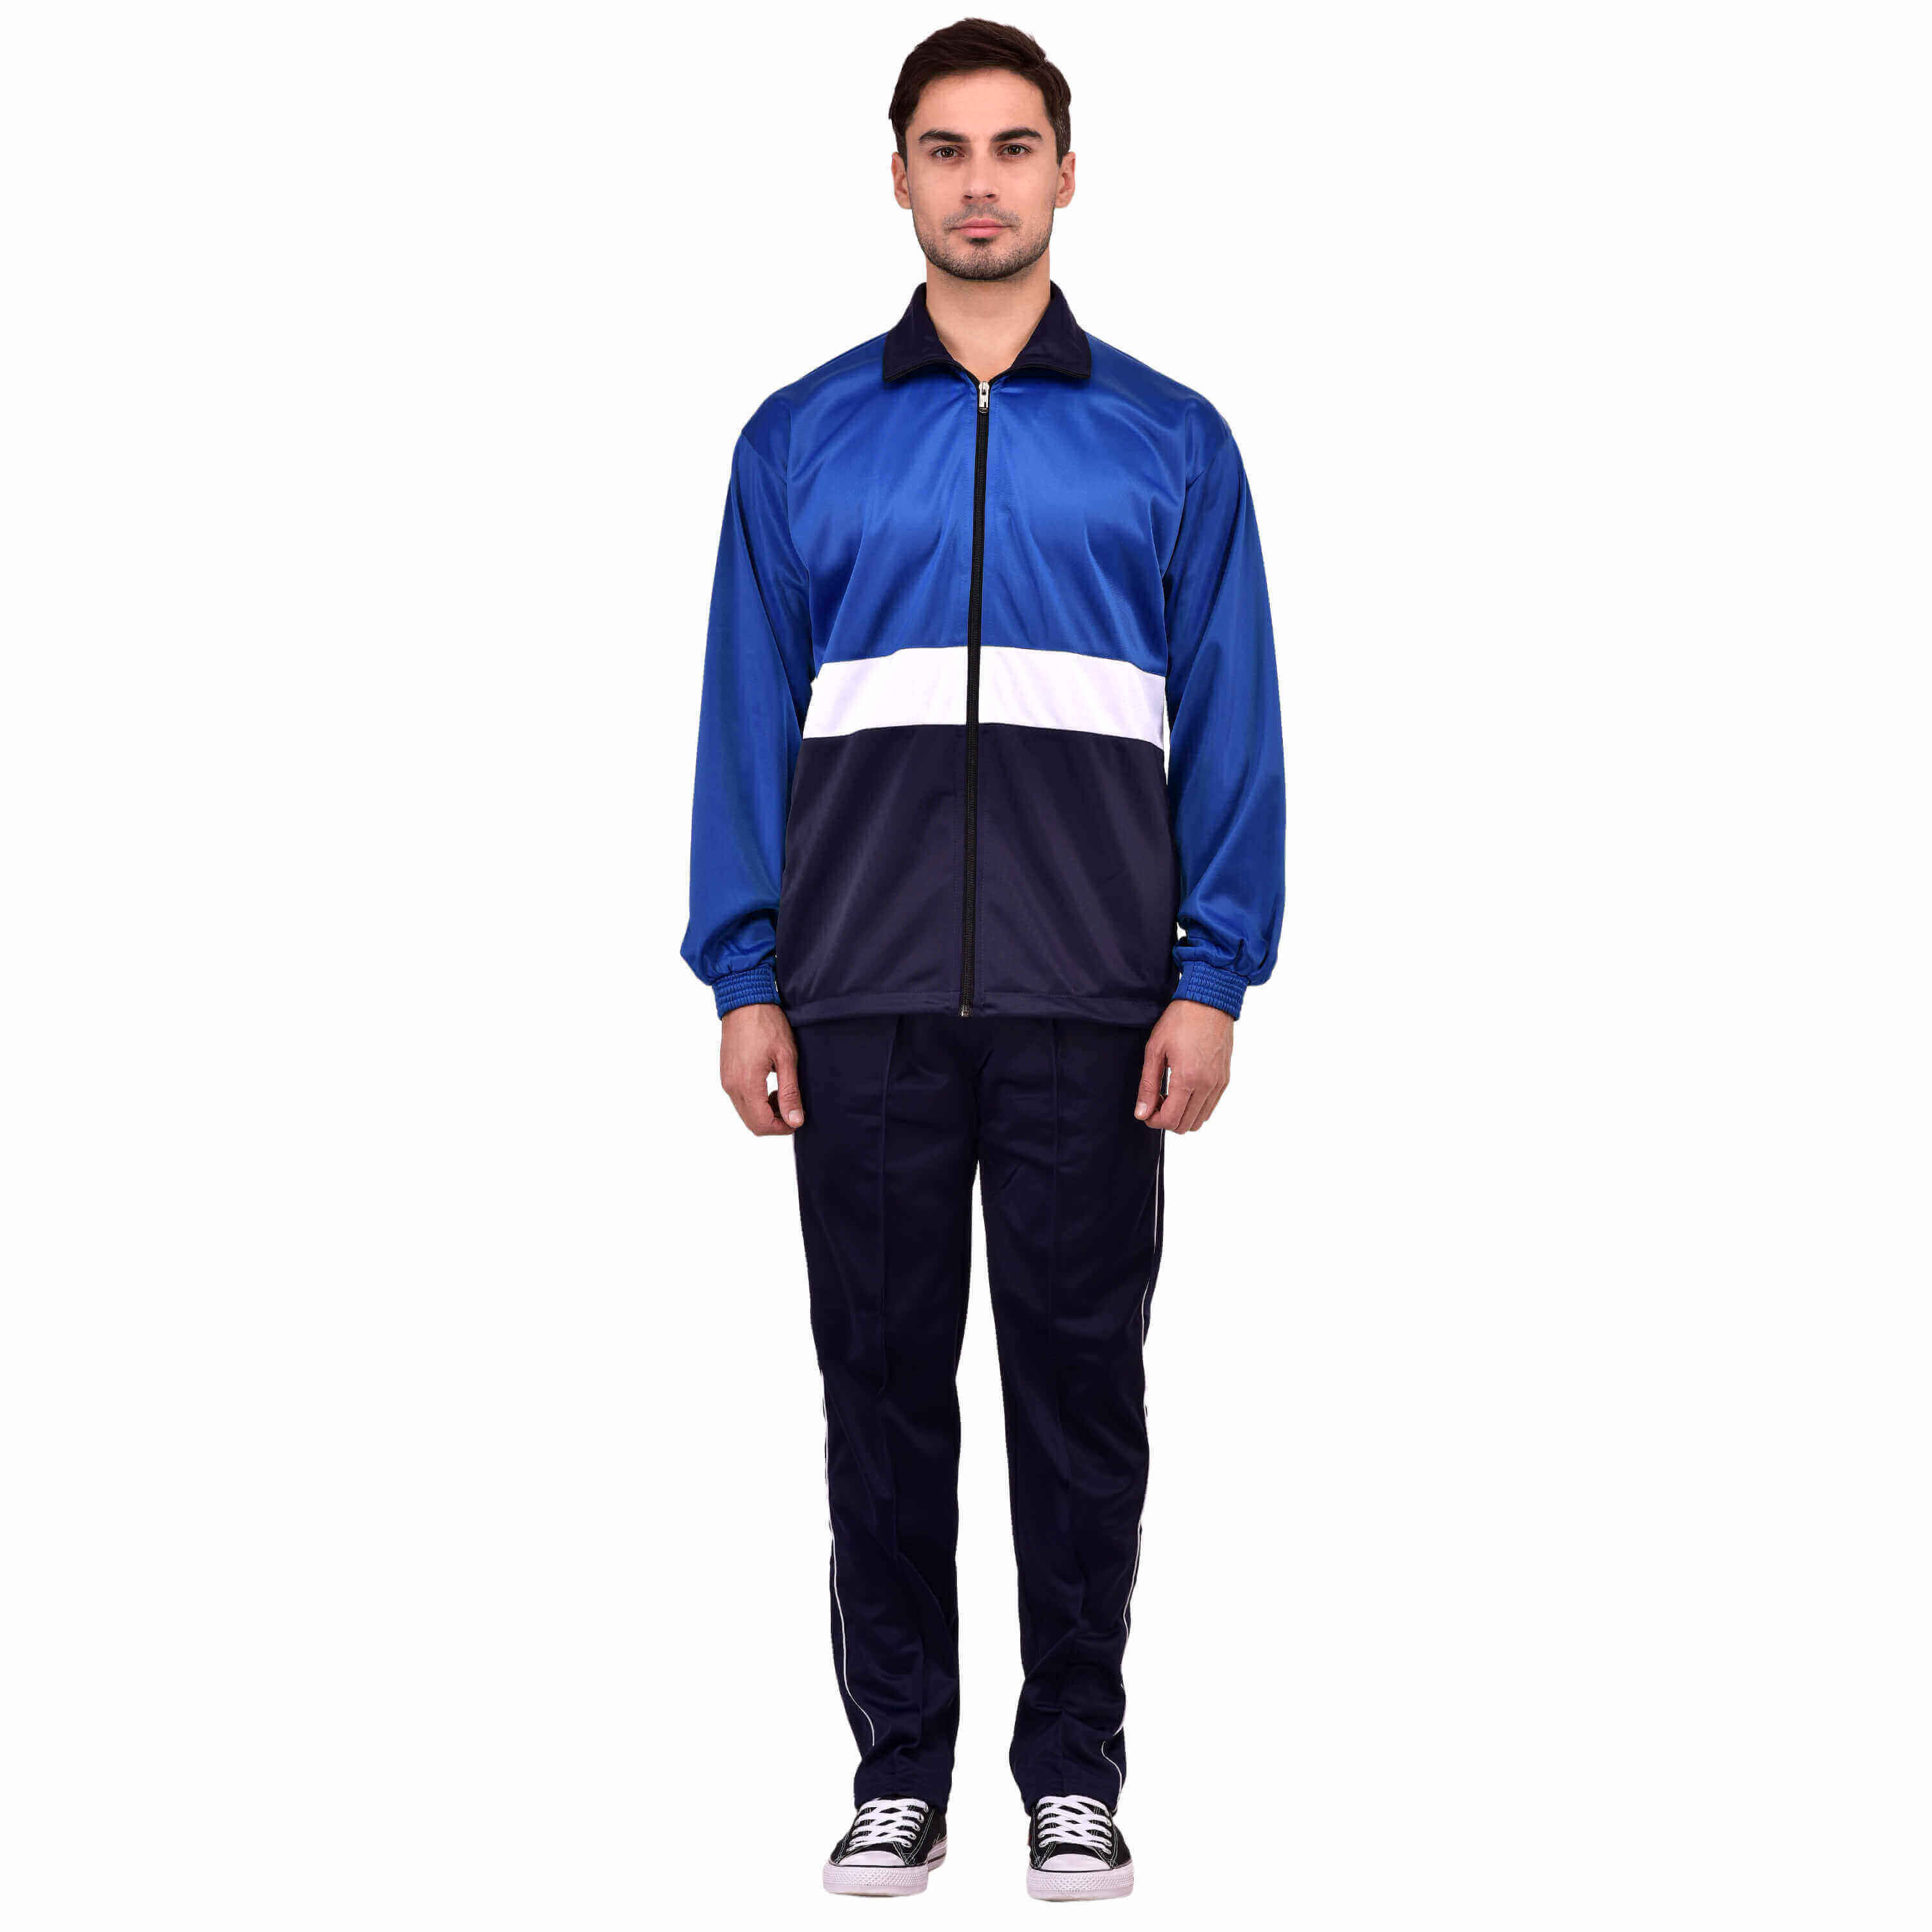 Matching Tracksuits Manufacturers in United-states-of-america